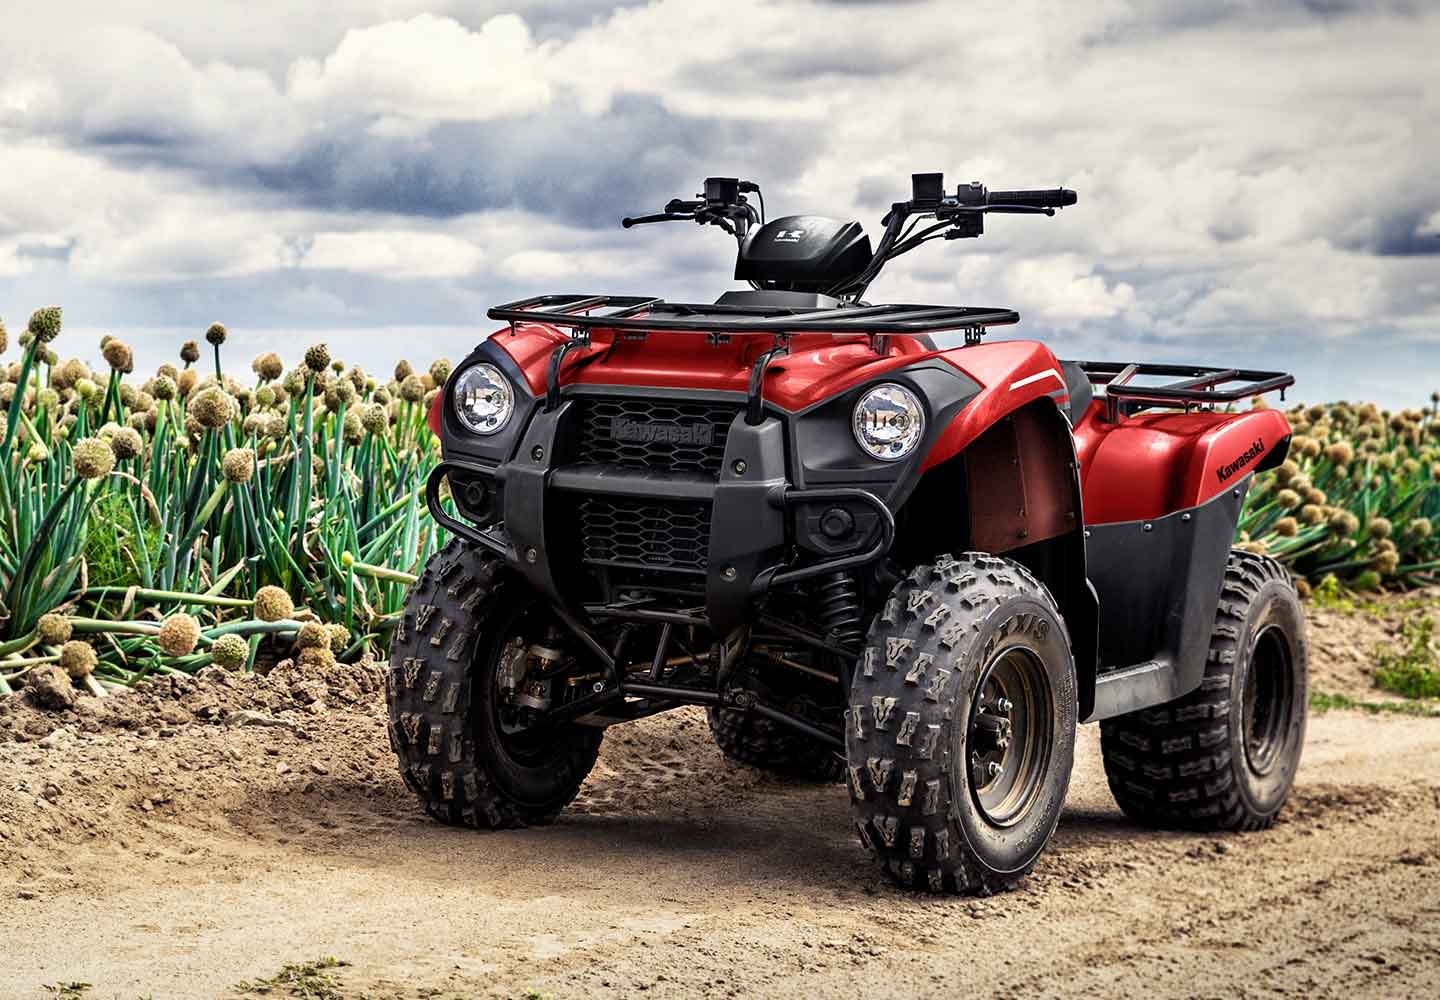 Kawasaki BRUTE FORCE 300 | Sport Utility ATV | Sporty Four-Wheeler